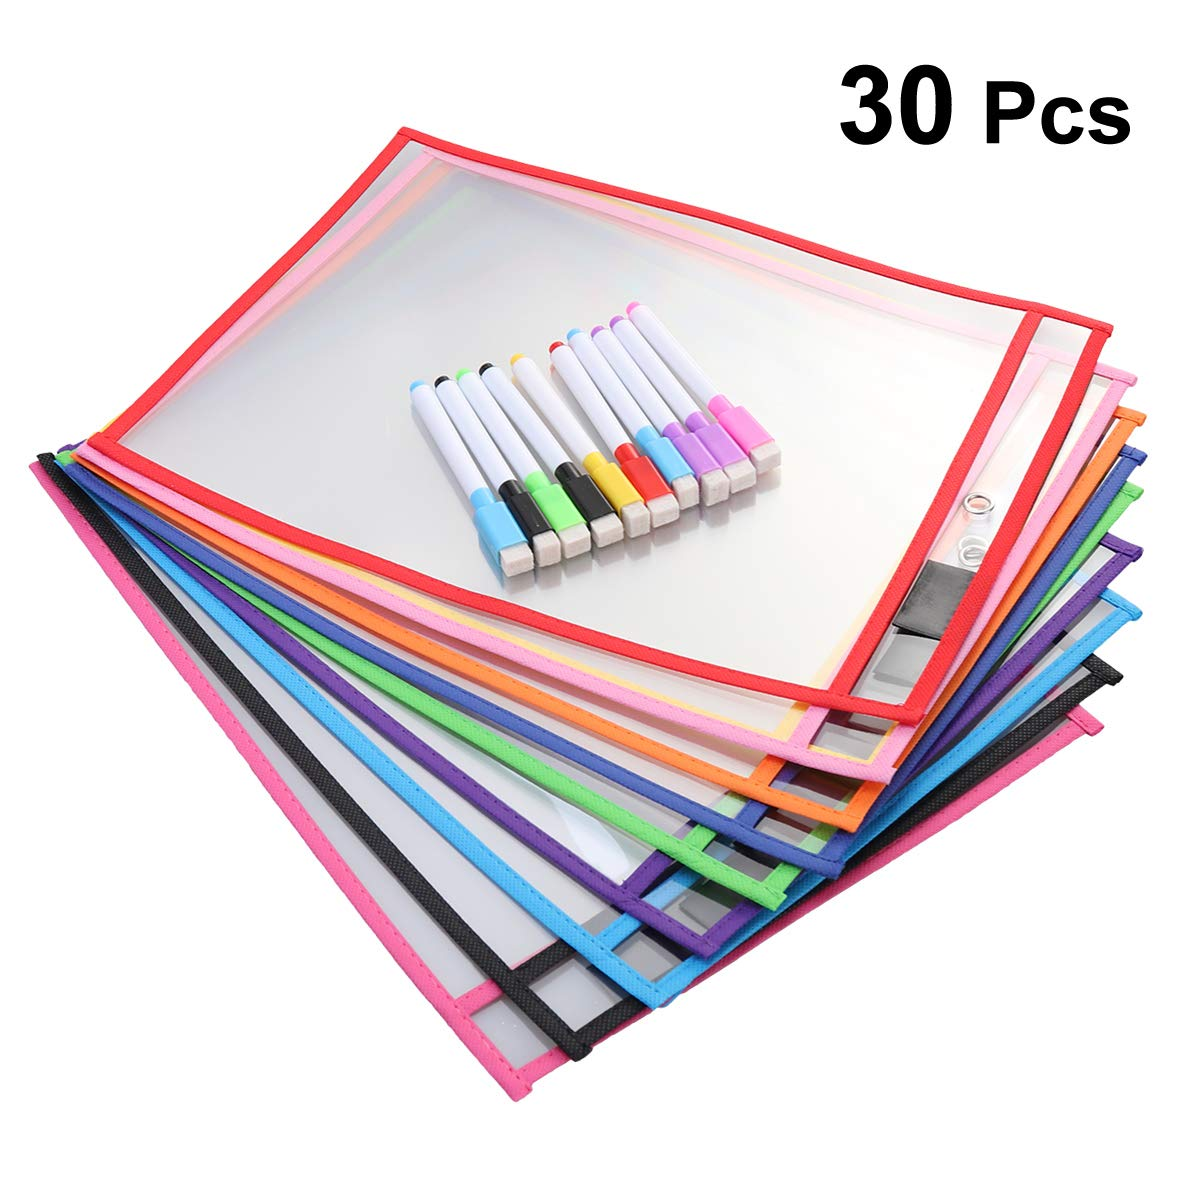 NUOBESTY 30Pcs Dry Erase Pockets Teacher Supplies for Classroom Organization